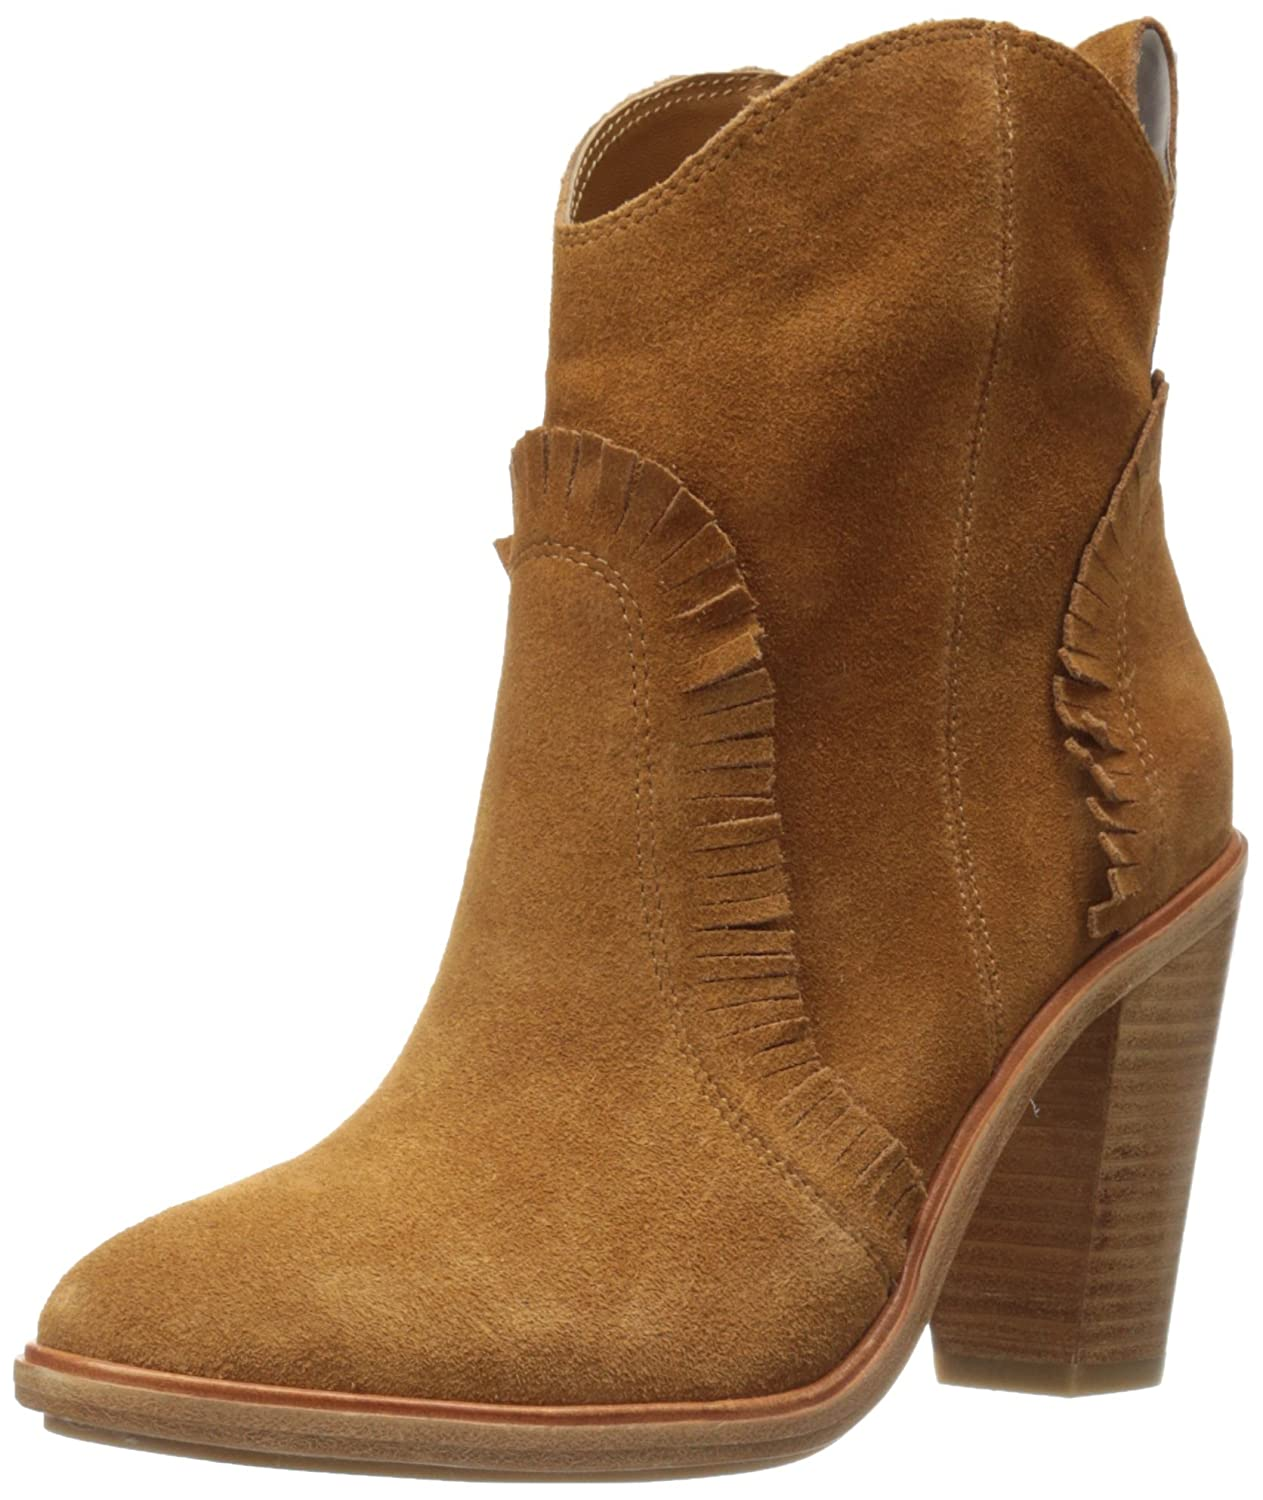 Joie Women's Mathilde Boot B01DOHKTEW 35.5 M EU / 5.5 B(M) US|Whiskey